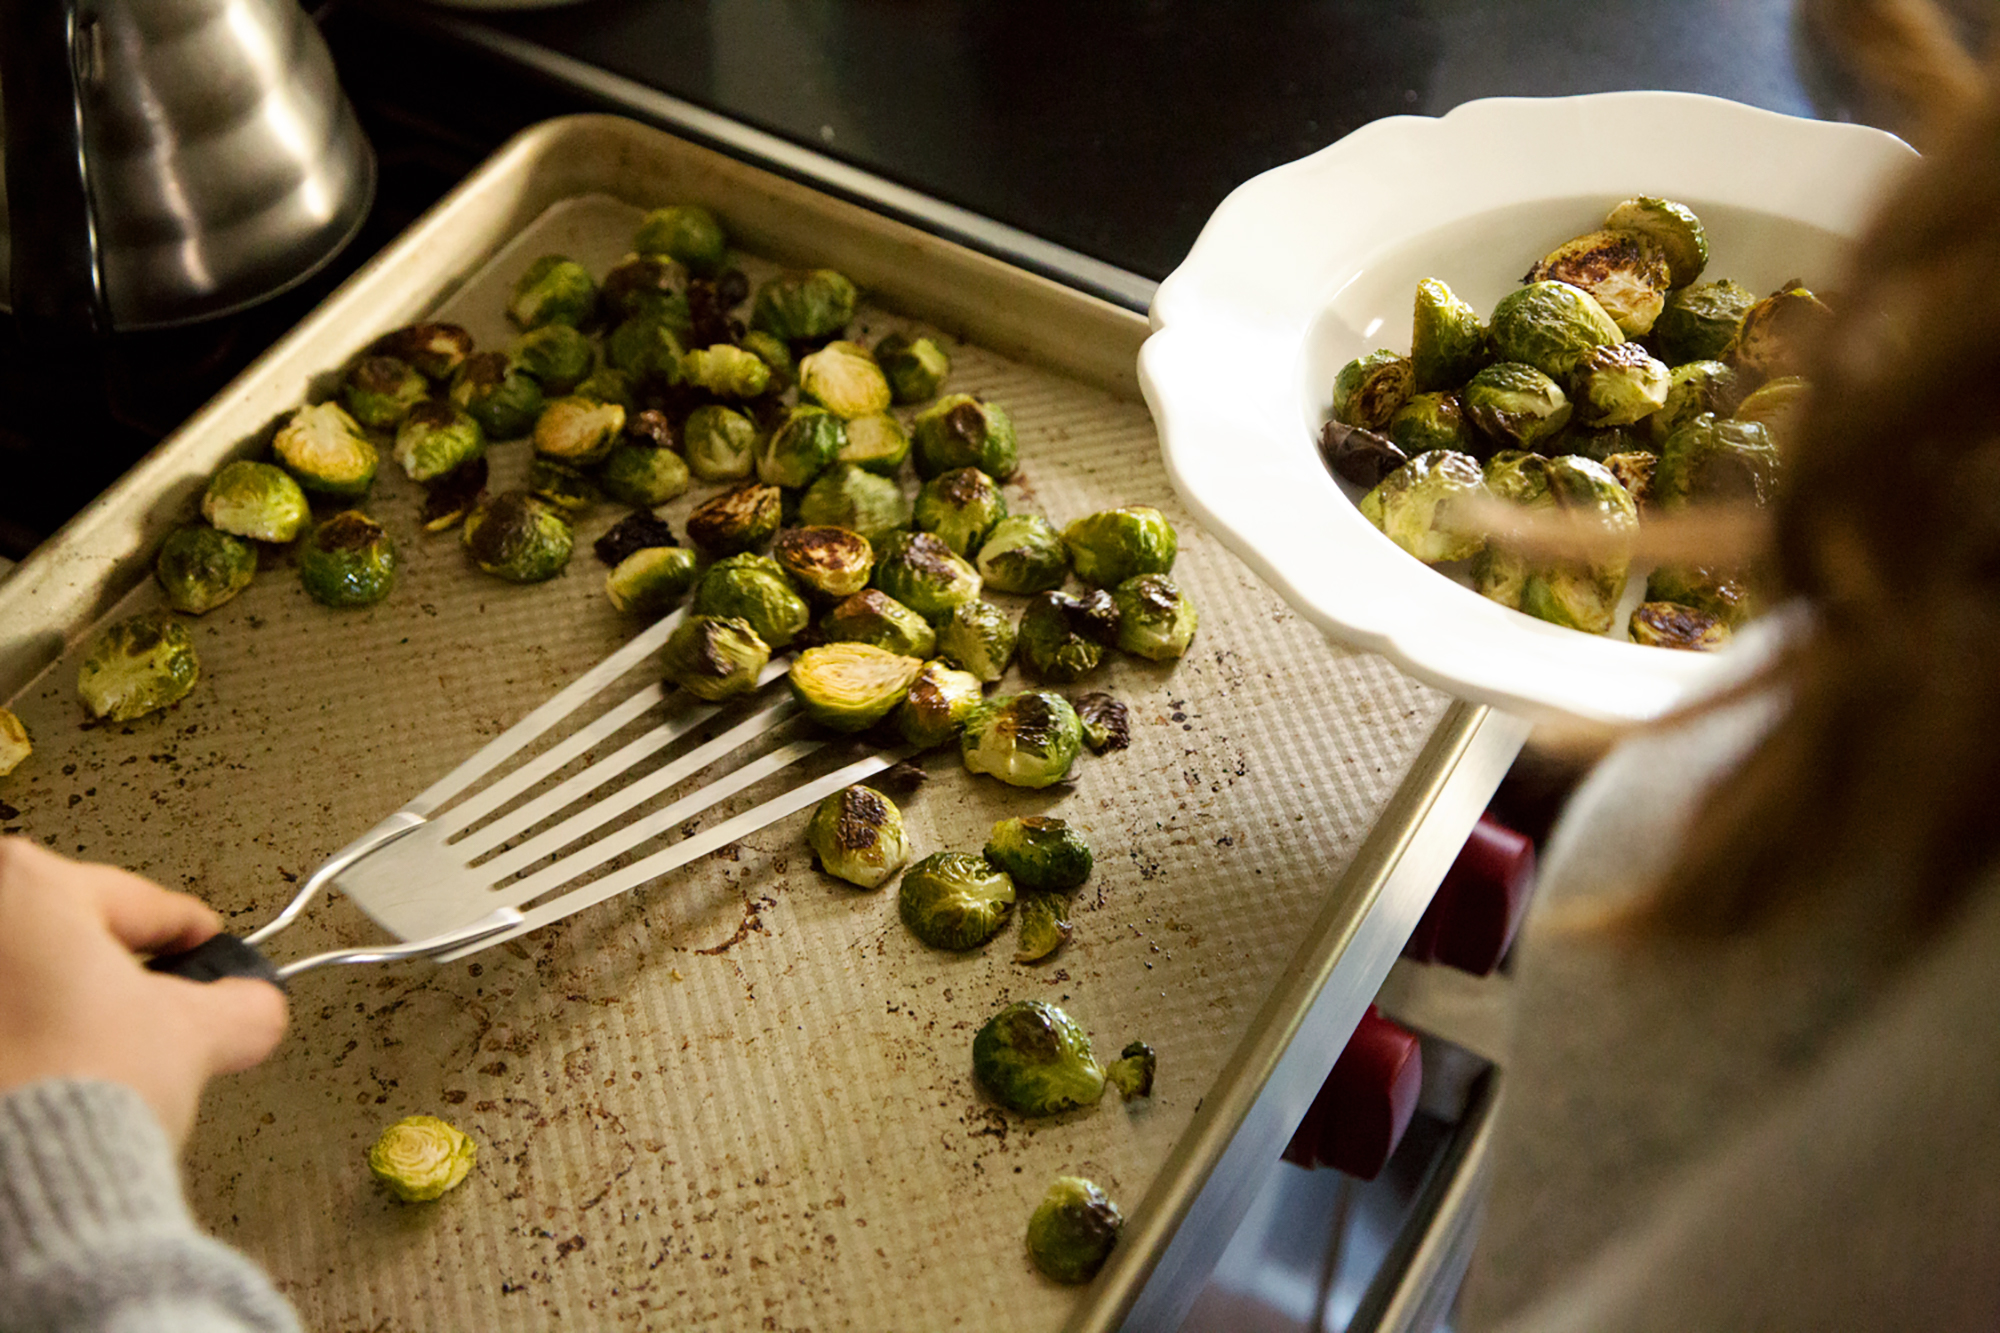 jo-torrijos-states-of-reverie-simple-brussels-sprouts-recipe-4.jpg